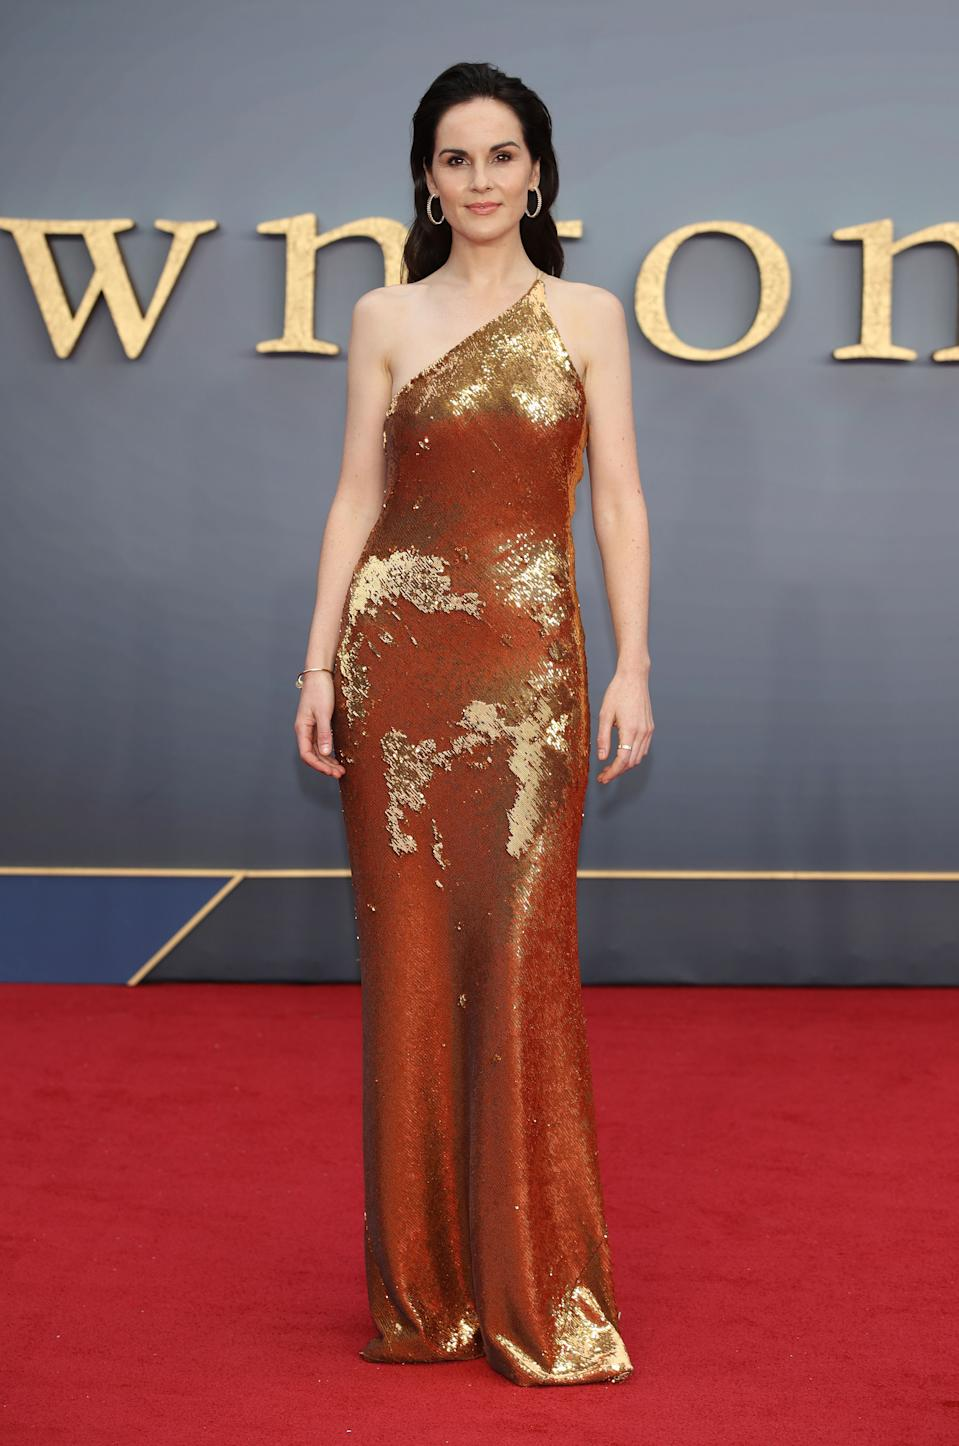 Michelle Dockery attends glitters in gold in a Galvan London gown [Photo: Getty Images]